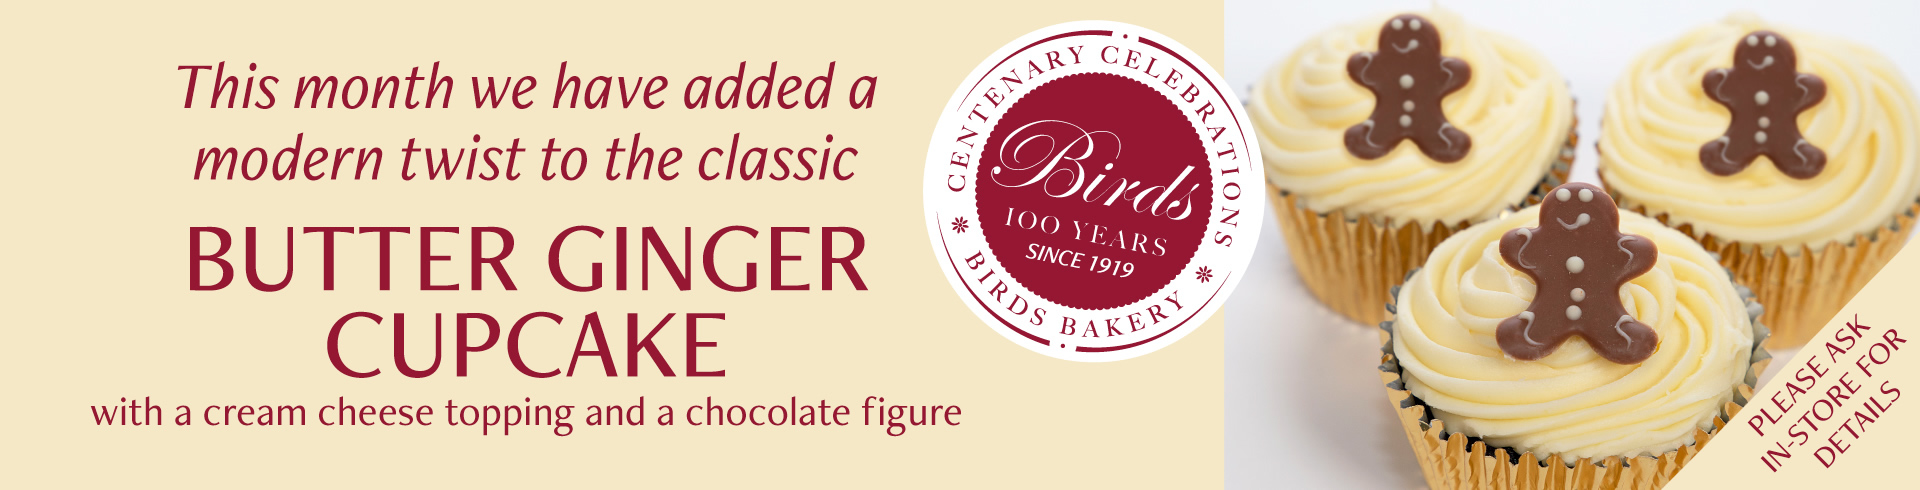 Each month, during our Centenary Year we will be bringing back Old Favourites. This month we have added a modern twist to the classic Butter Ginger Cupcake with a cream cheese topping and a chocolate figure, subject to availability